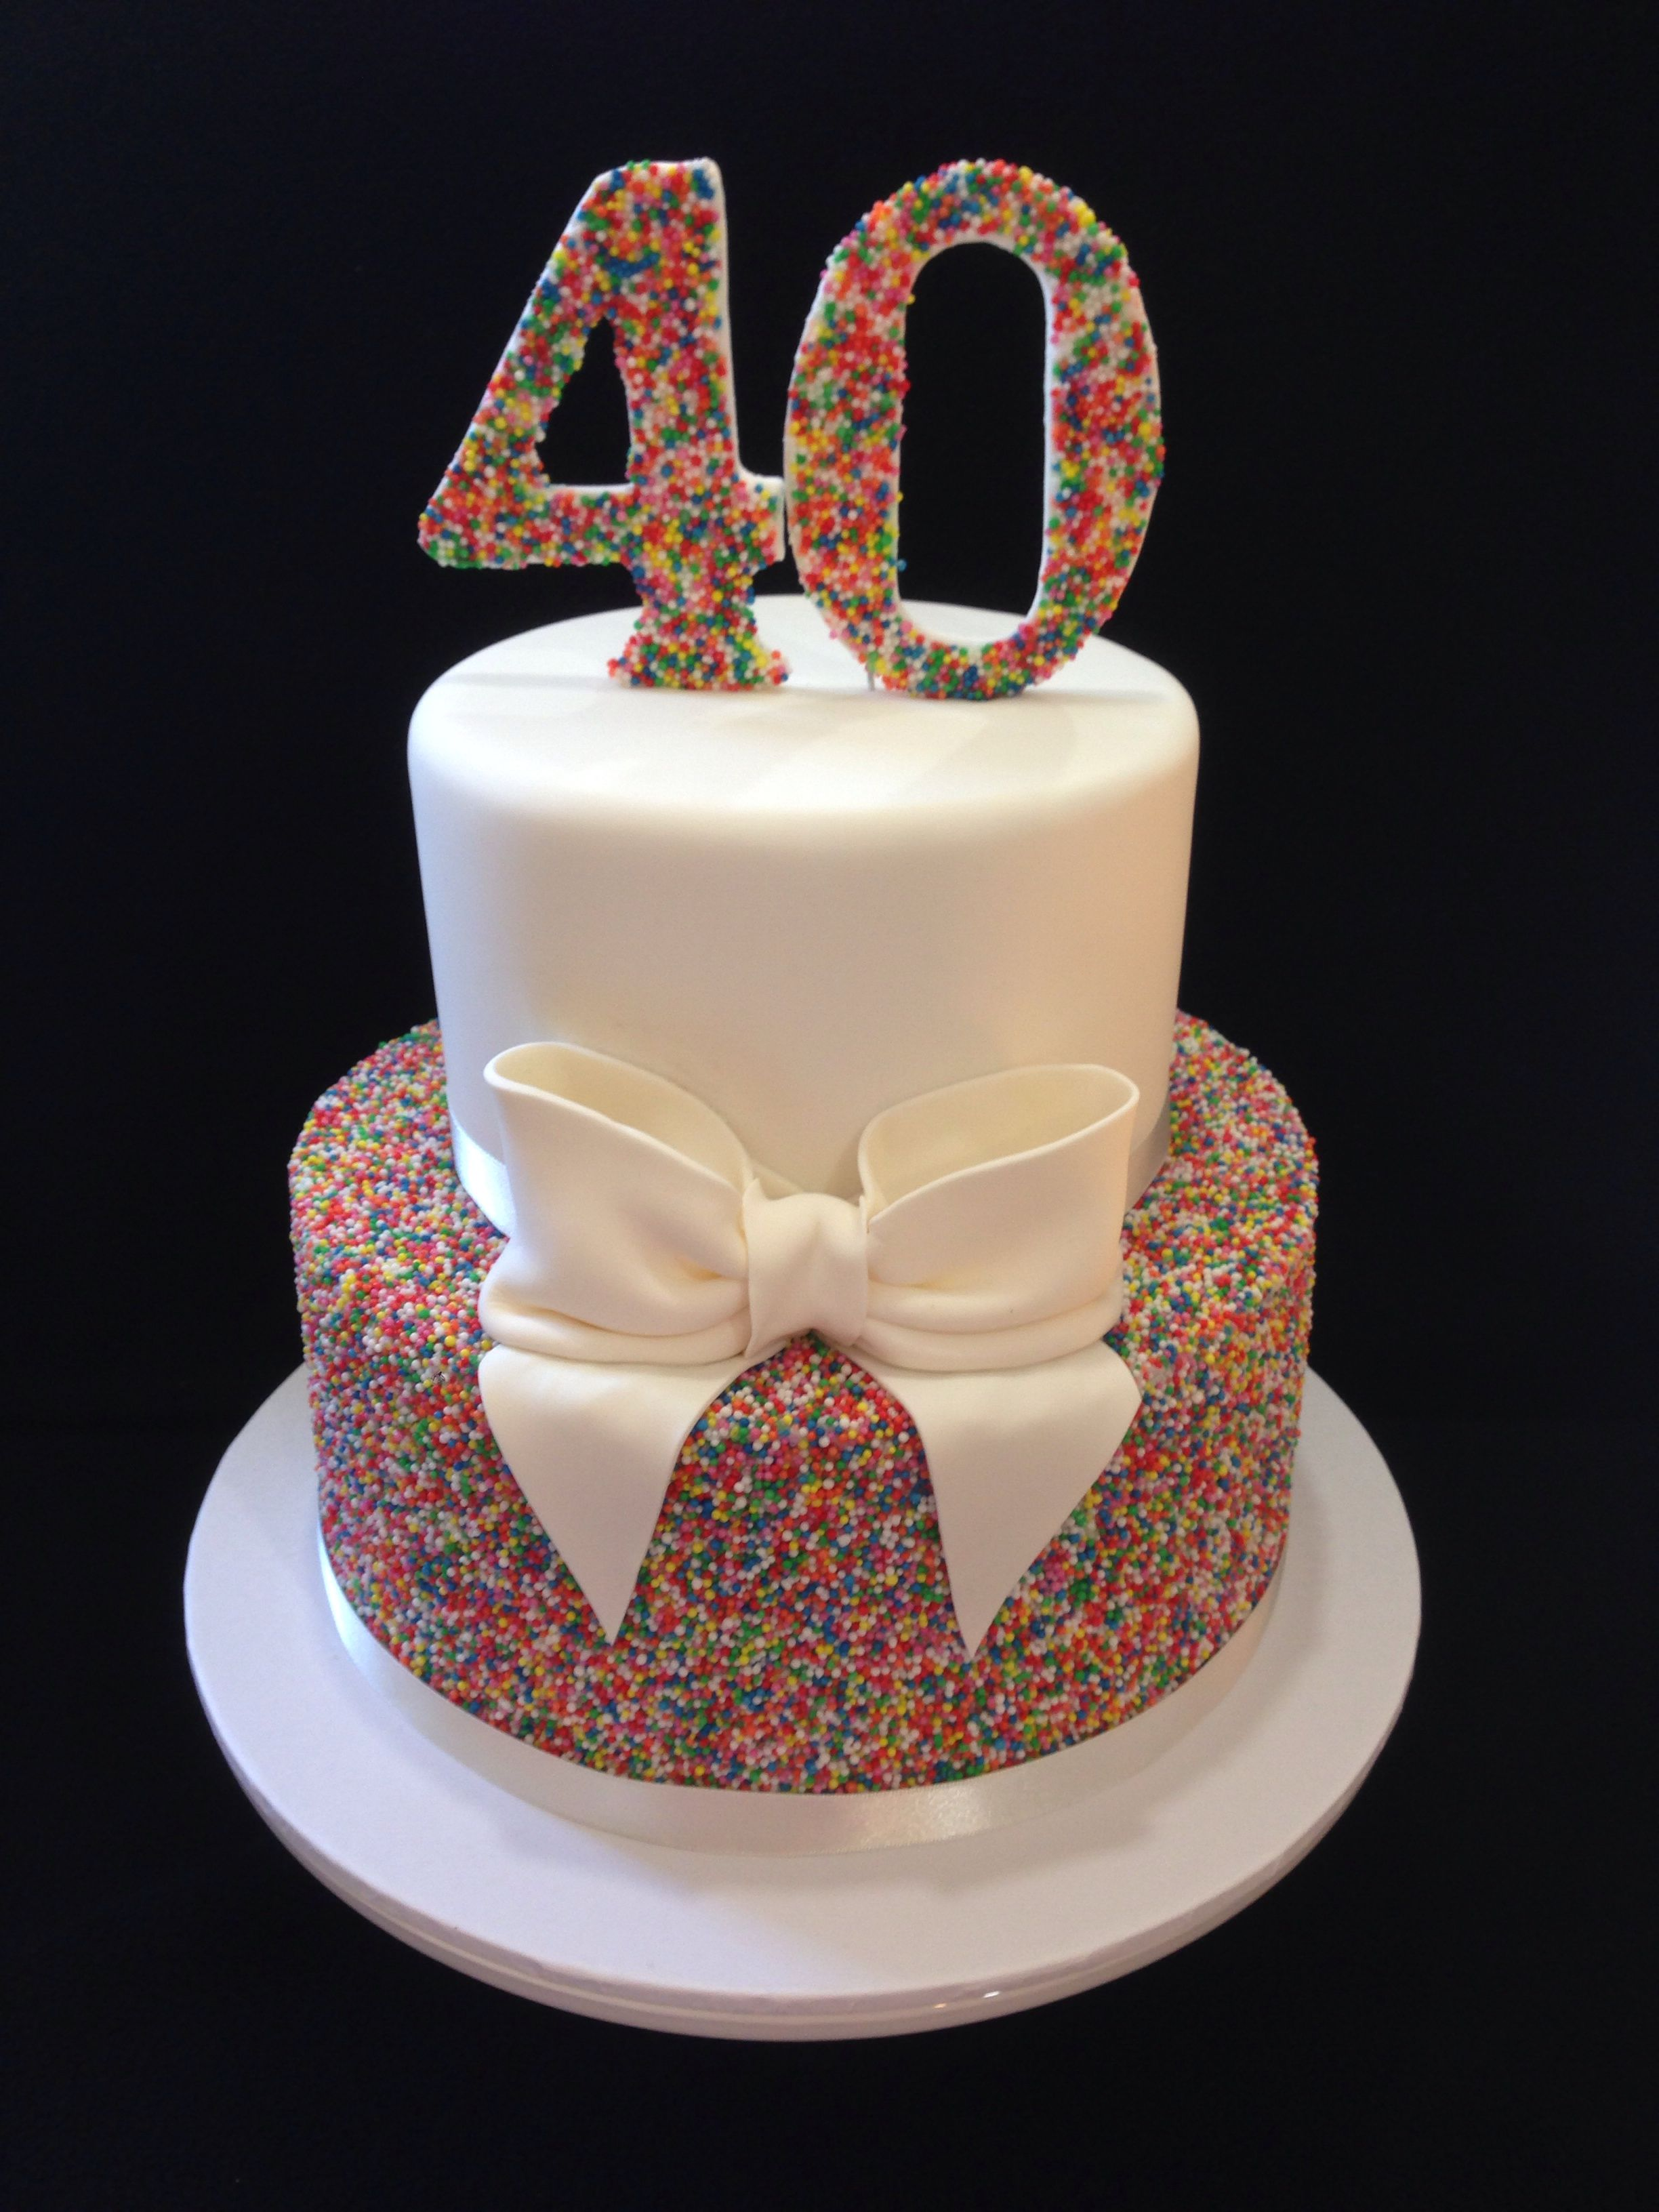 40th Birthday Cake Ideas.40th Birthday Cake 100 S 1000 S Love This Look Hundreds